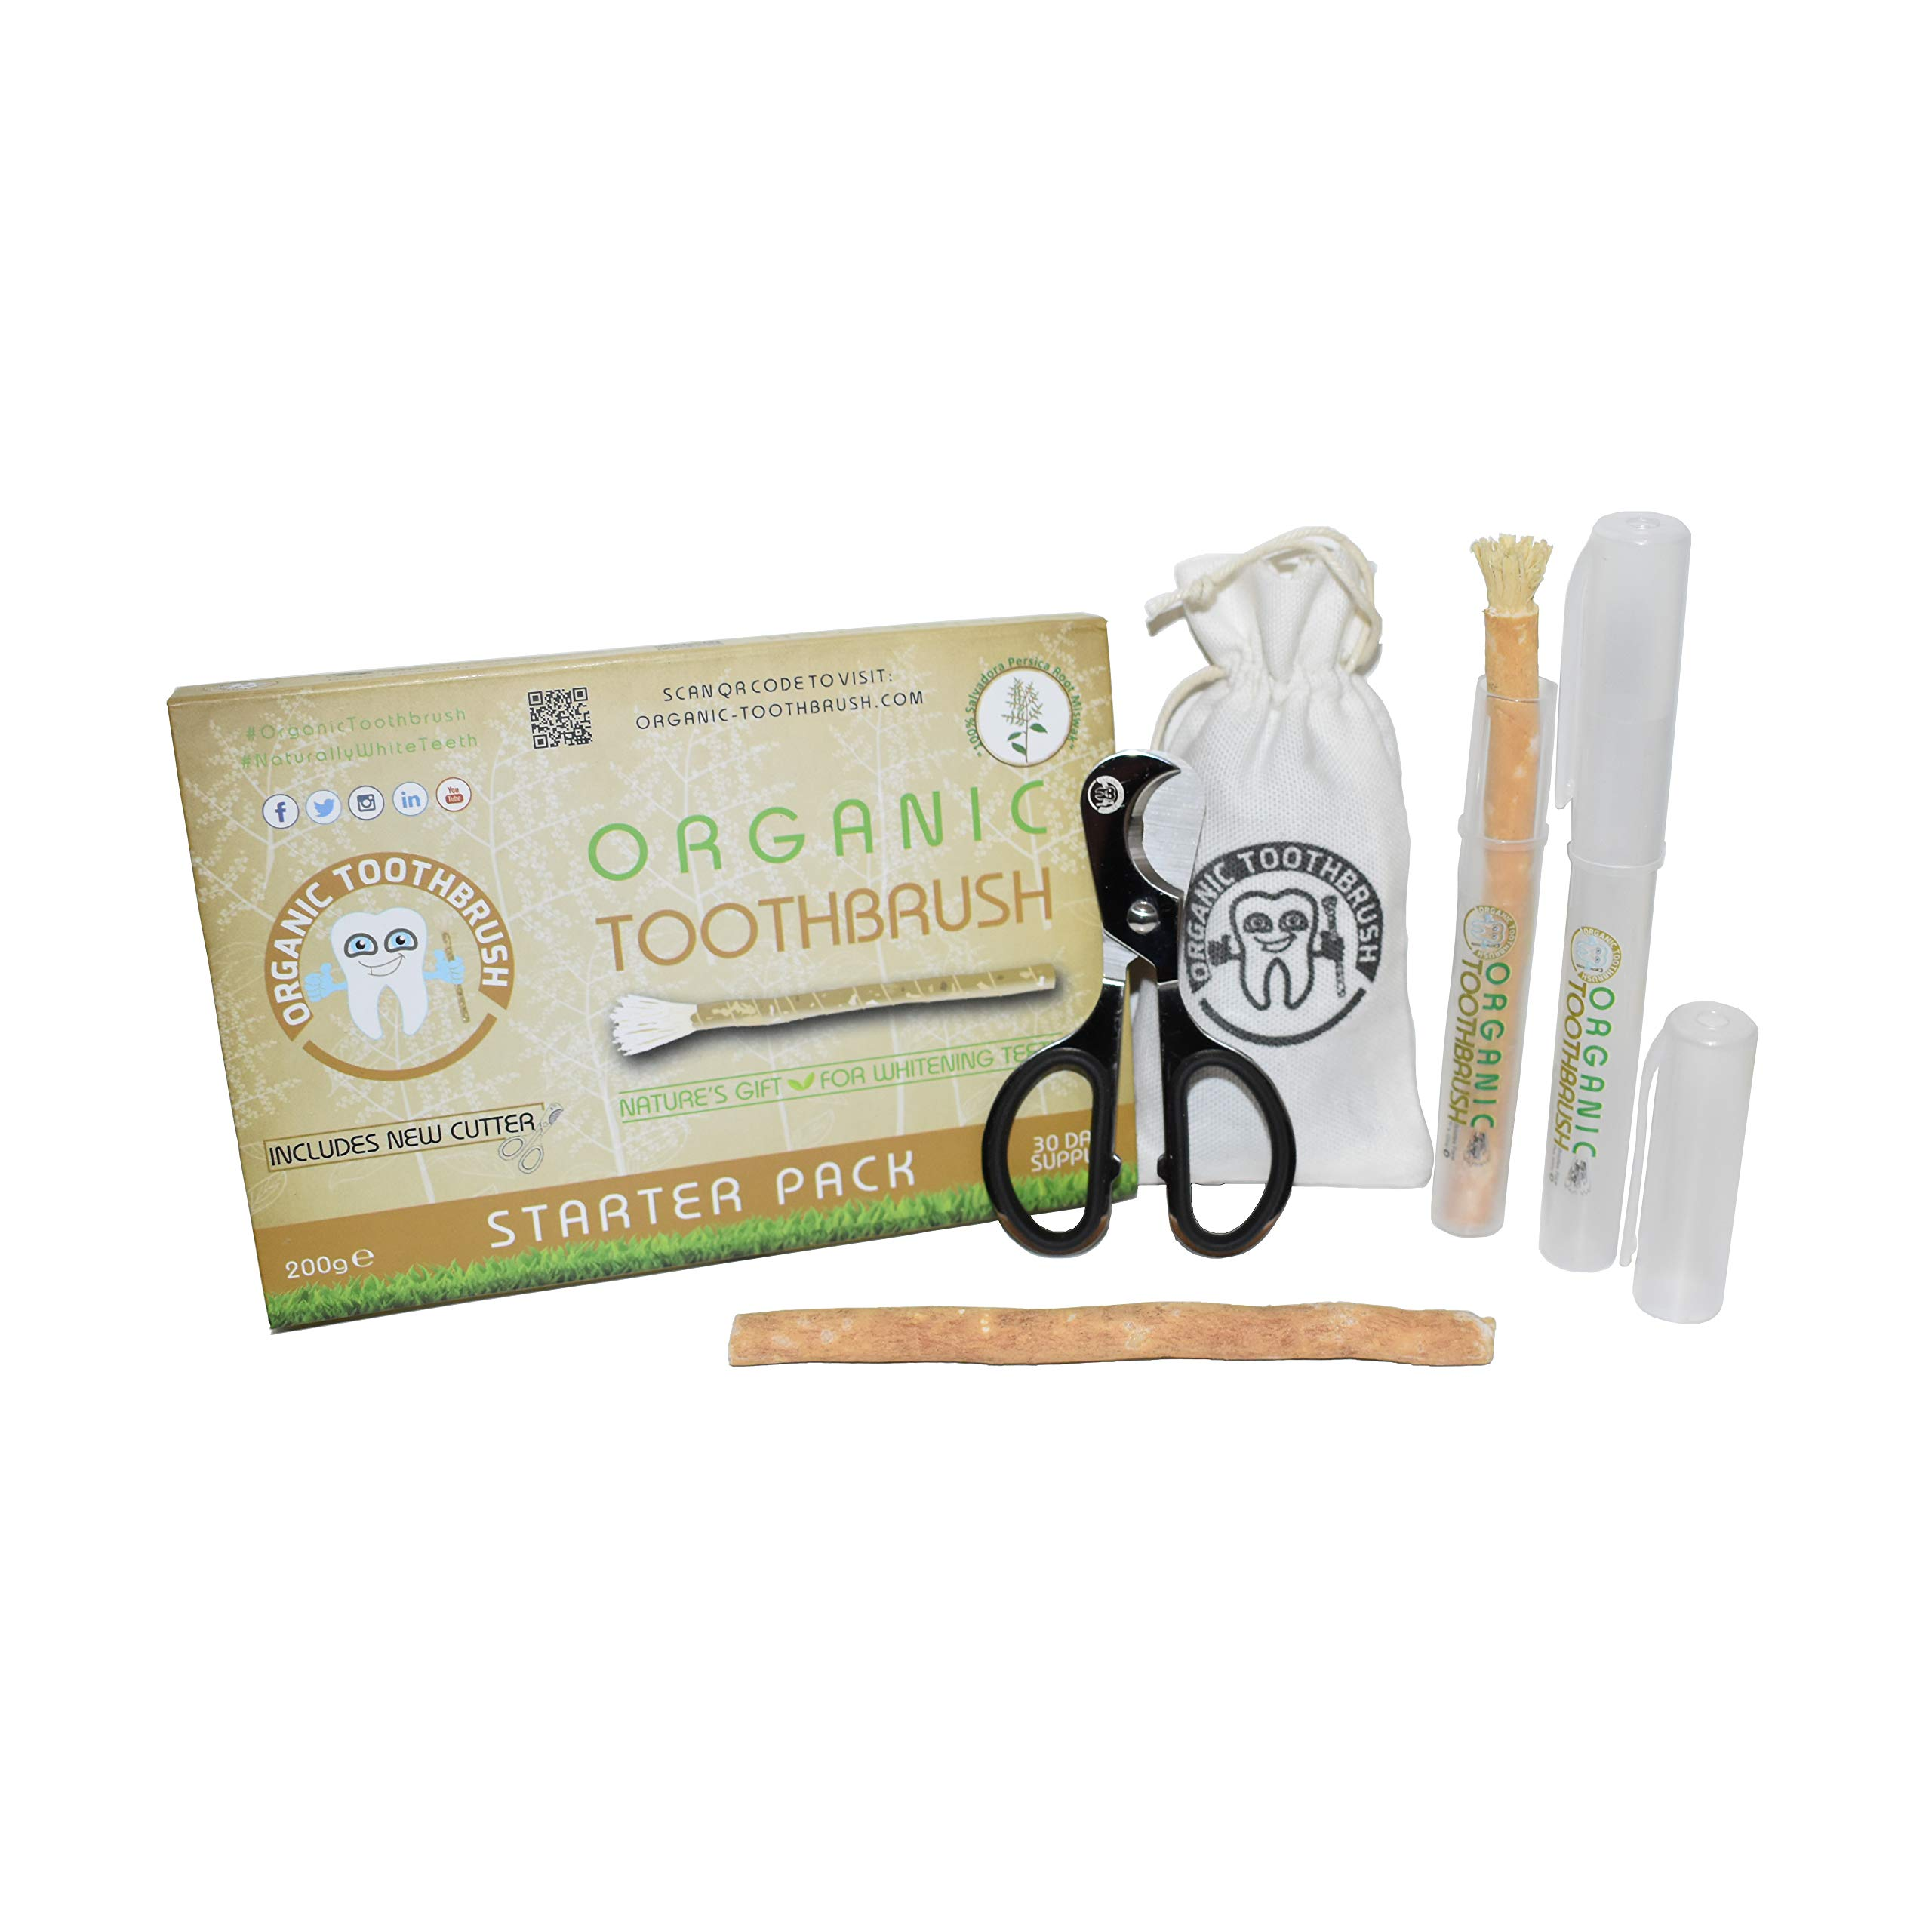 The Organic Toothbrush - VEGAN Miswak - Natural Teeth Whitening Kit - Starter Pack - 2 Biodegradable Miswak Sticks, 2 Portable Cases & Cutter - Environmentally Friendly Salvadora Persica Tree Root product image